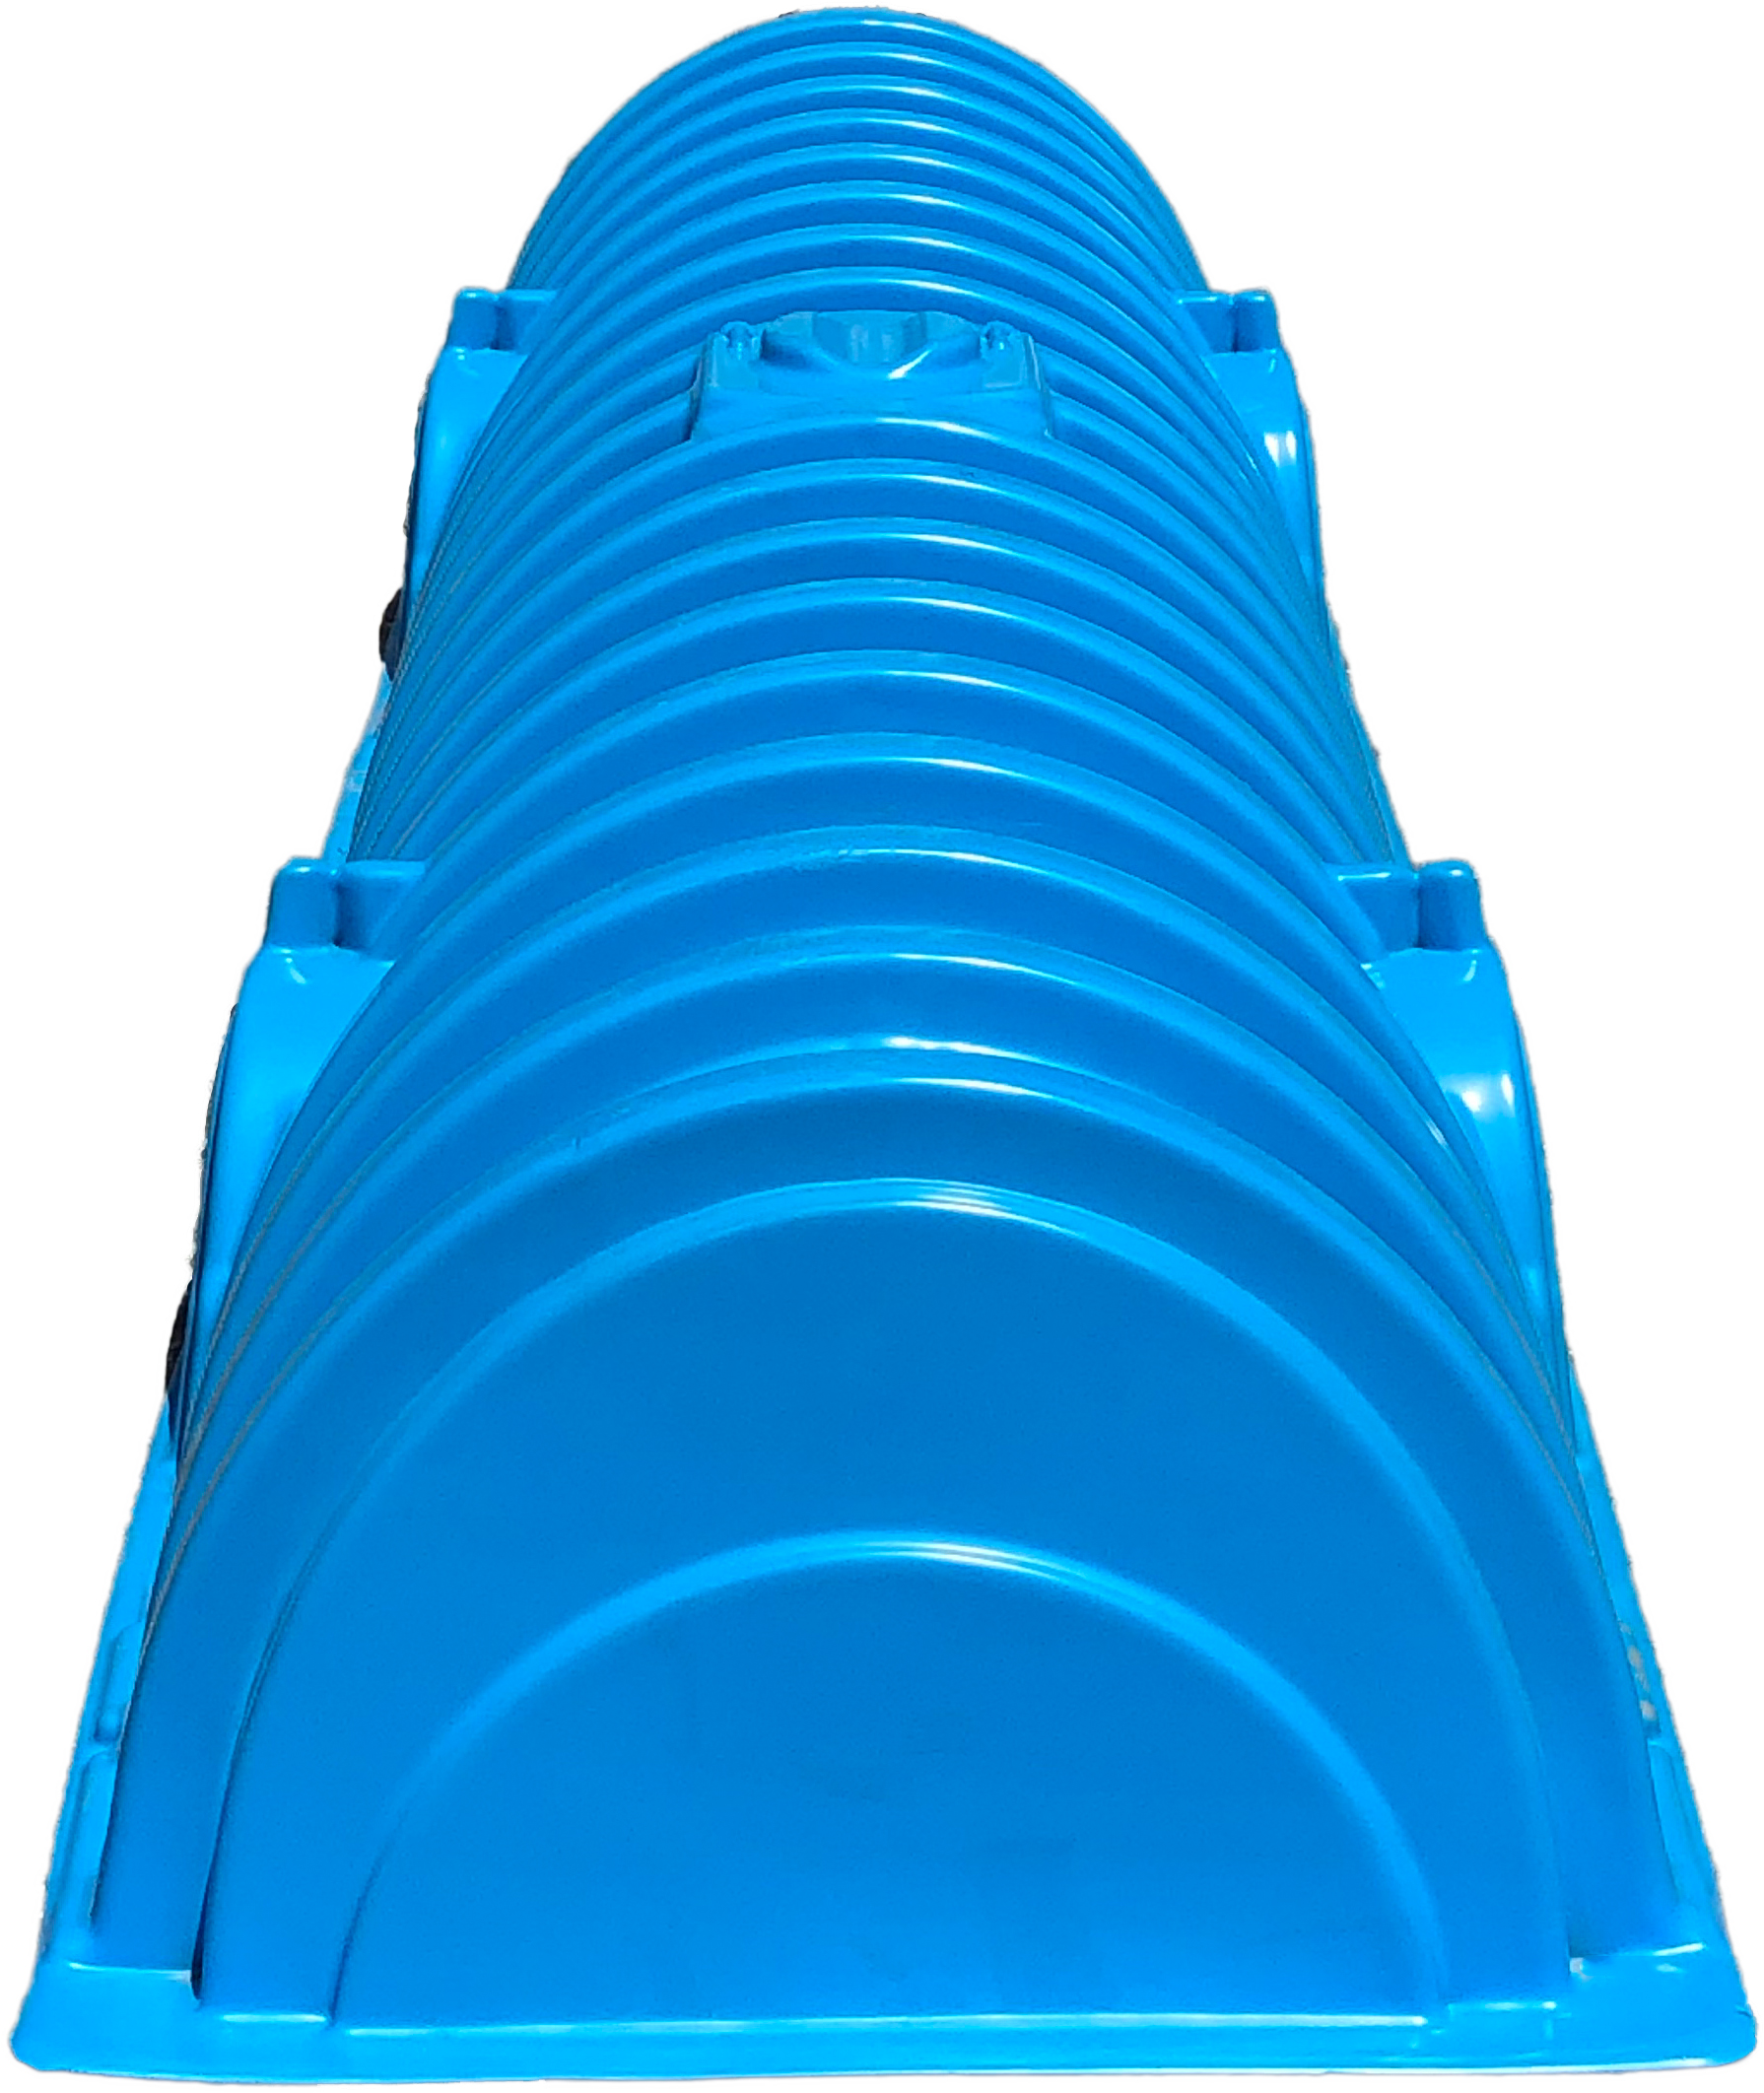 Recharger 150XLHD septic chamber - front viewer - front view